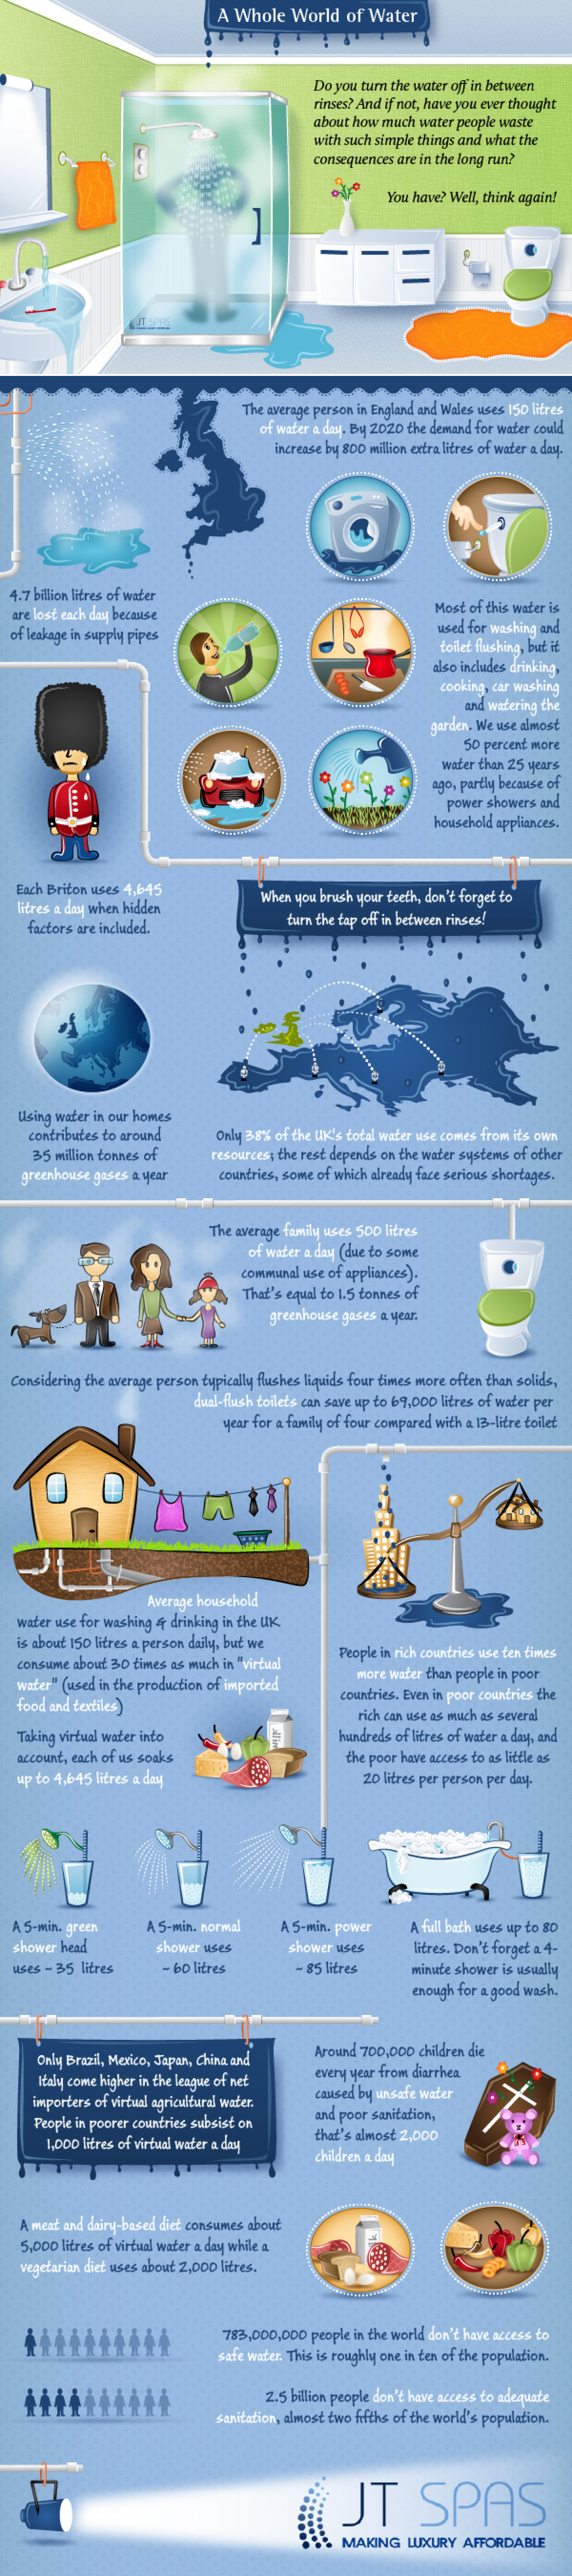 A Whole World of Water Infographic